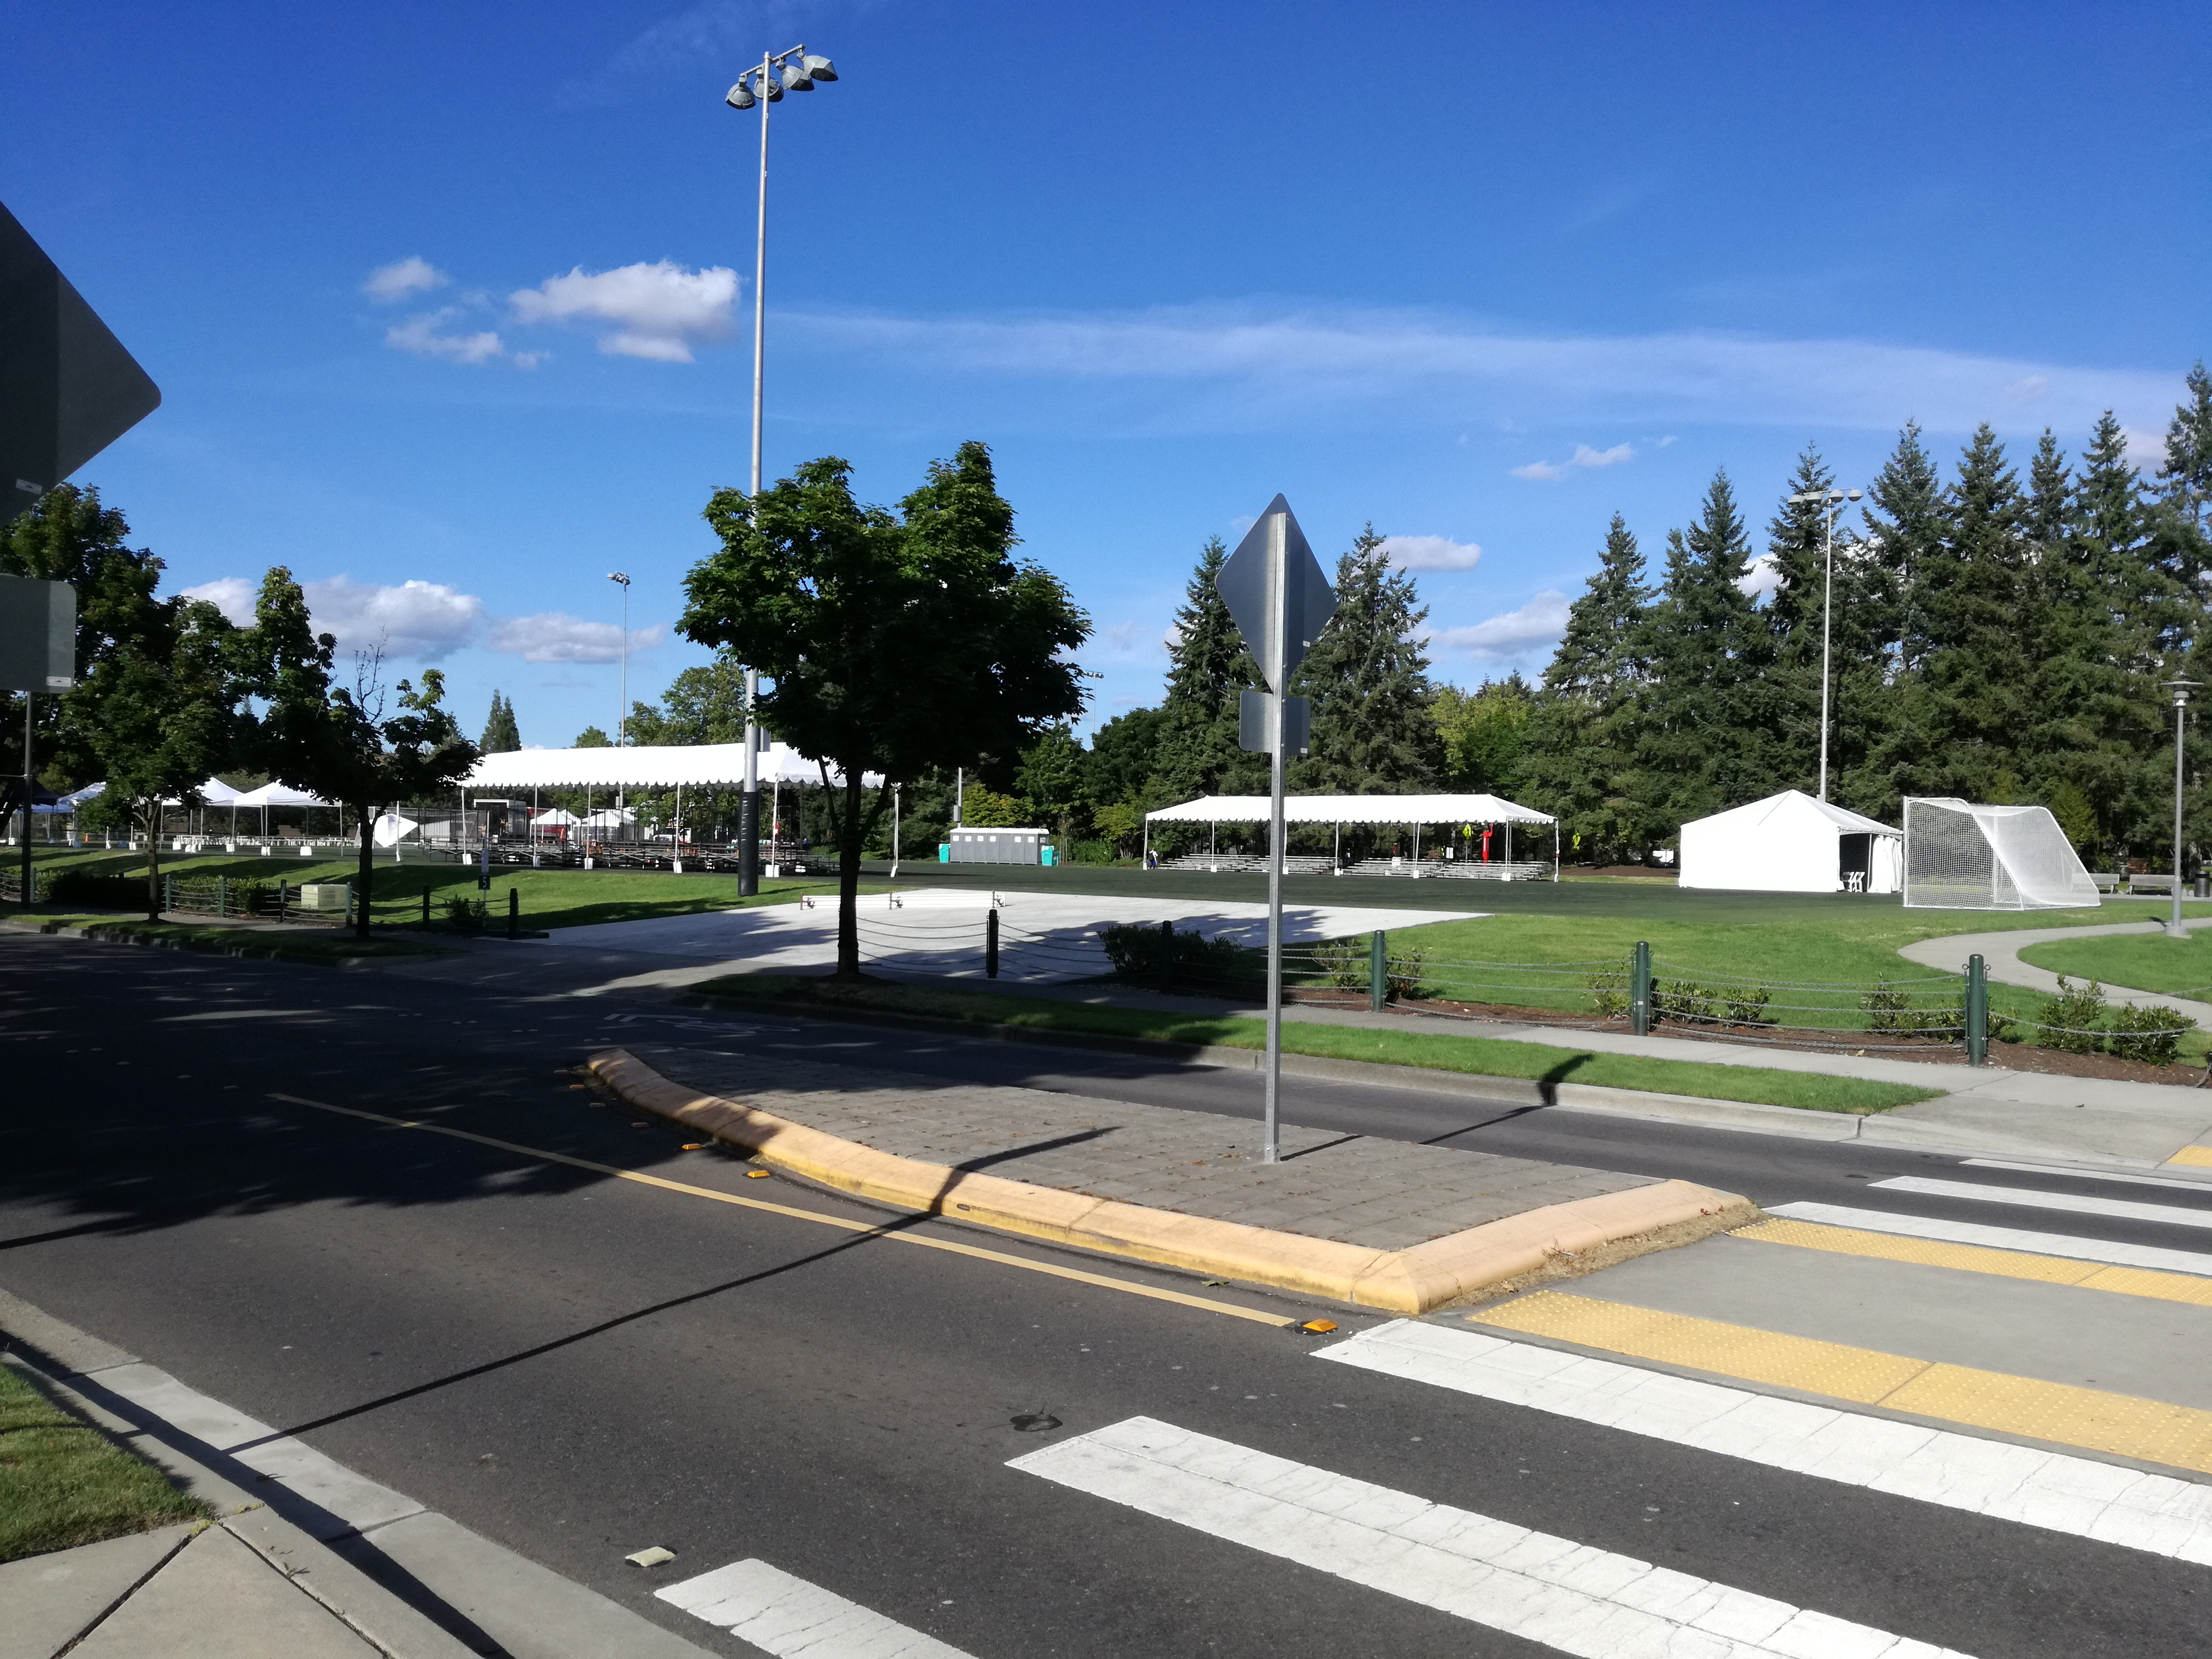 soccer fields area at the Microsoft Redmond Campus